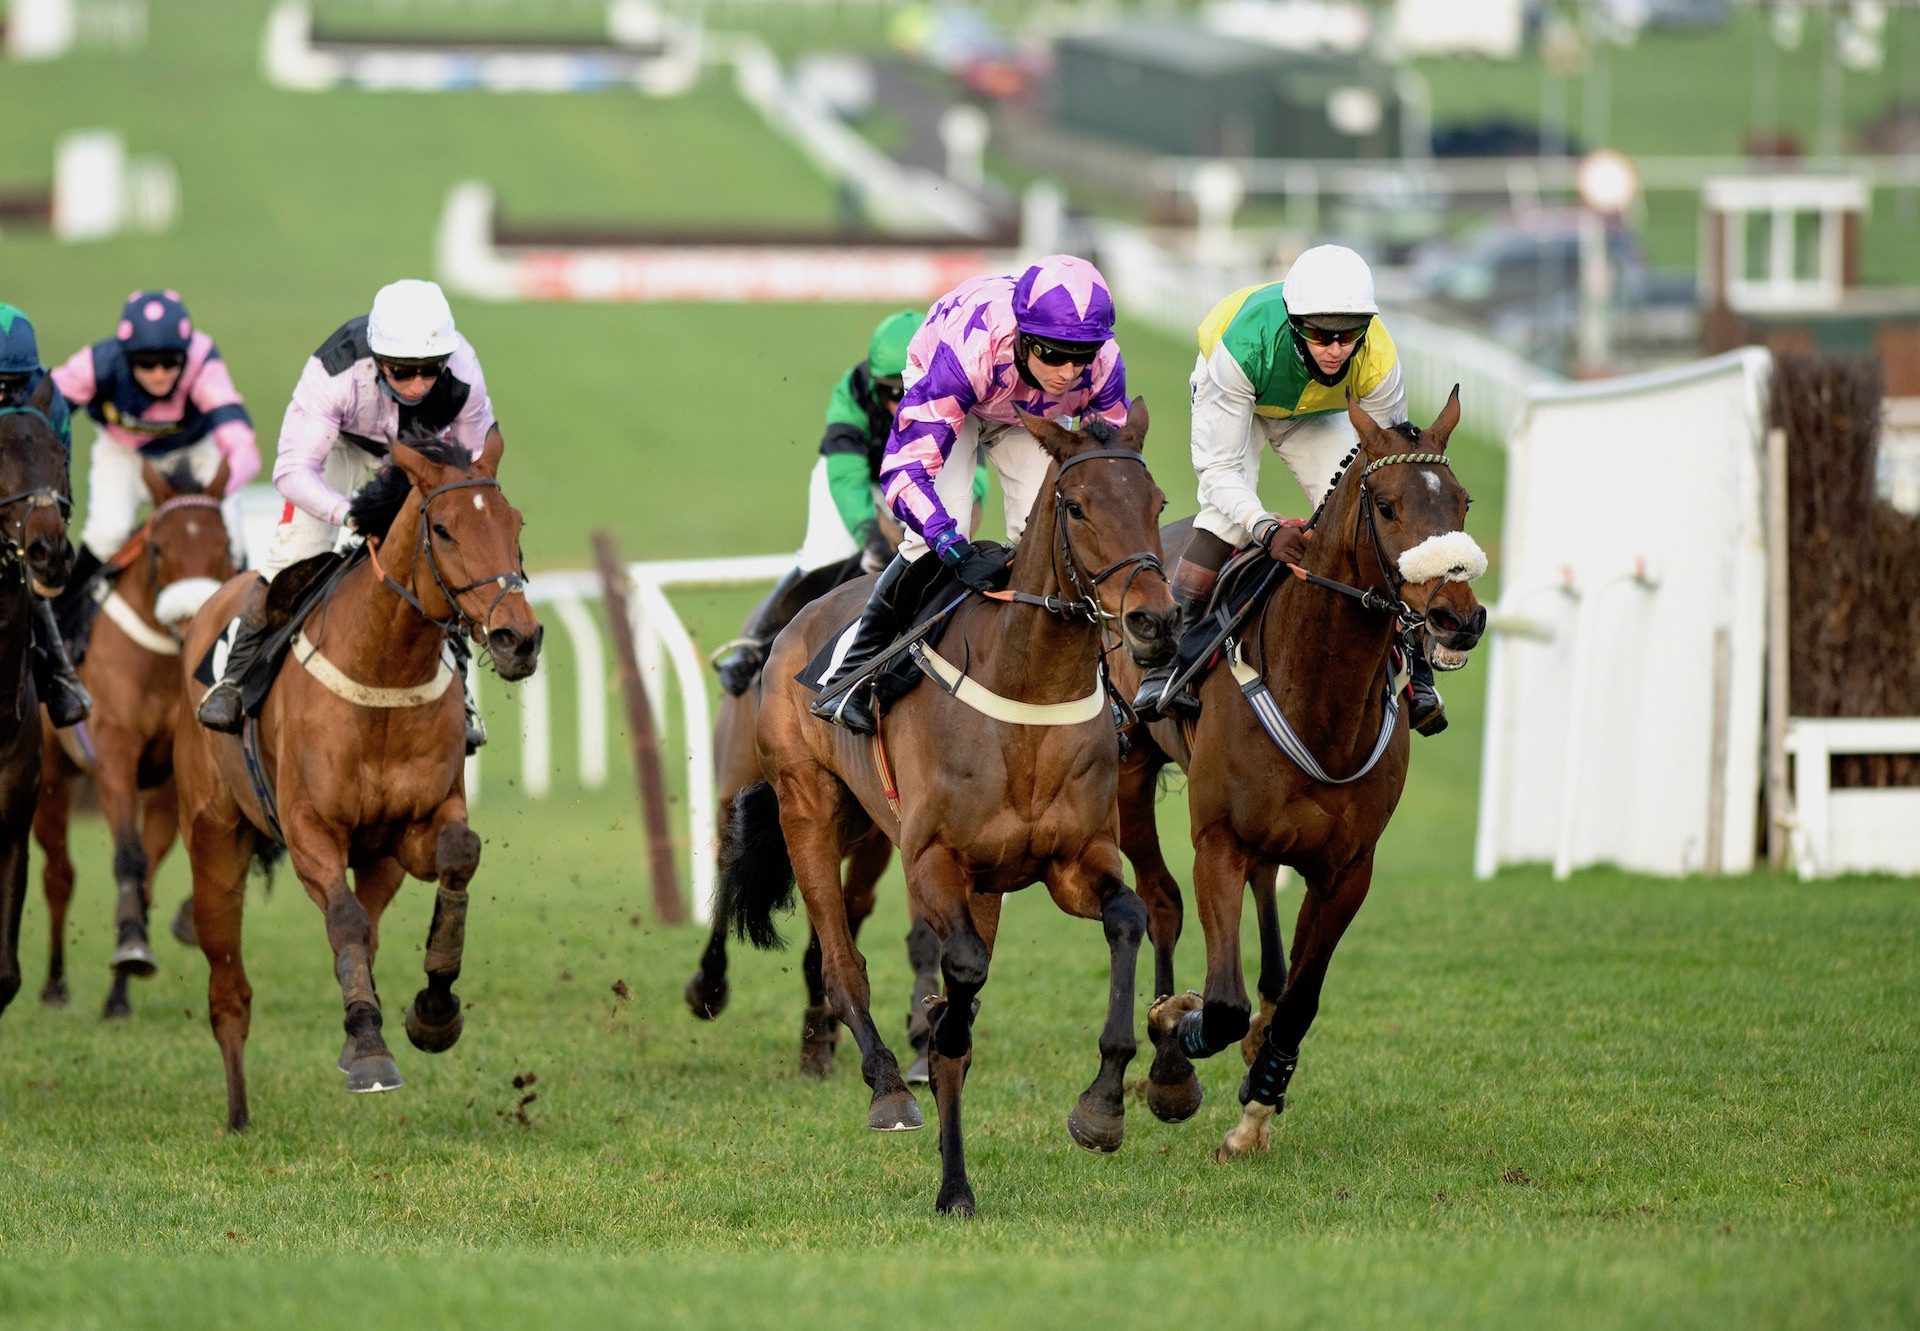 Annual Invictus (Mahler) Completed A Hat Trick In The Novices Hurdle At Plumpton